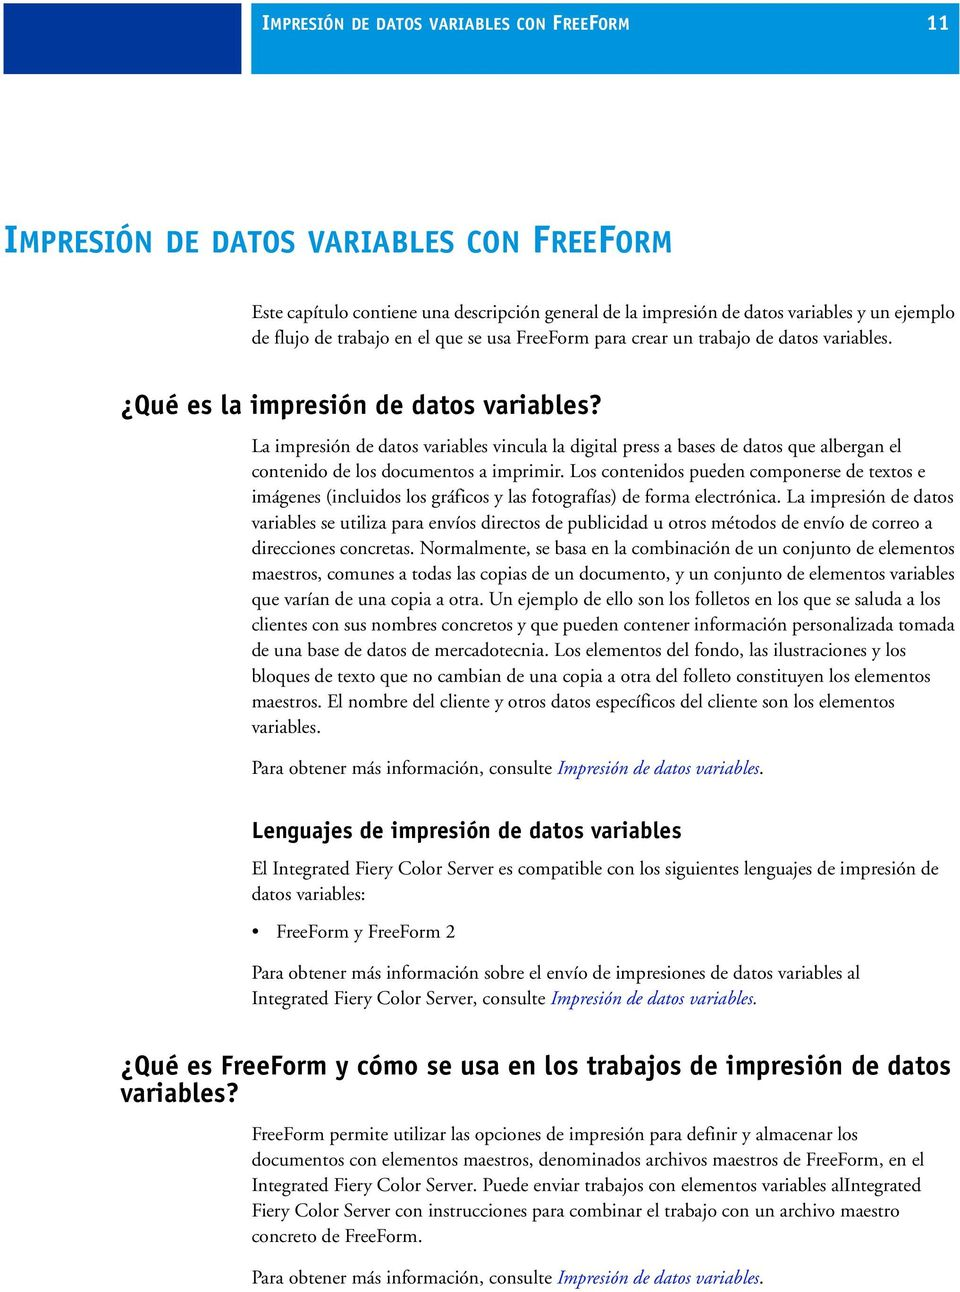 La impresión de datos variables vincula la digital press a bases de datos que albergan el contenido de los documentos a imprimir.